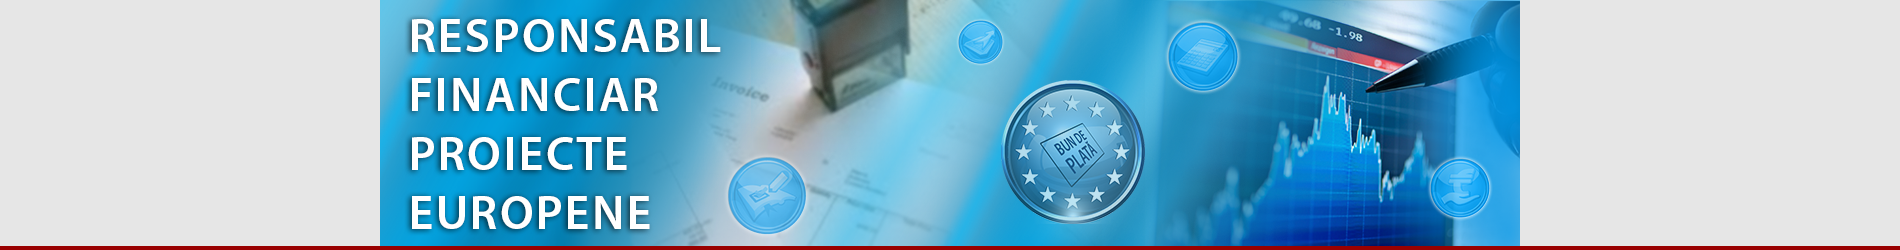 banner_site_responsabil financiar pr europene